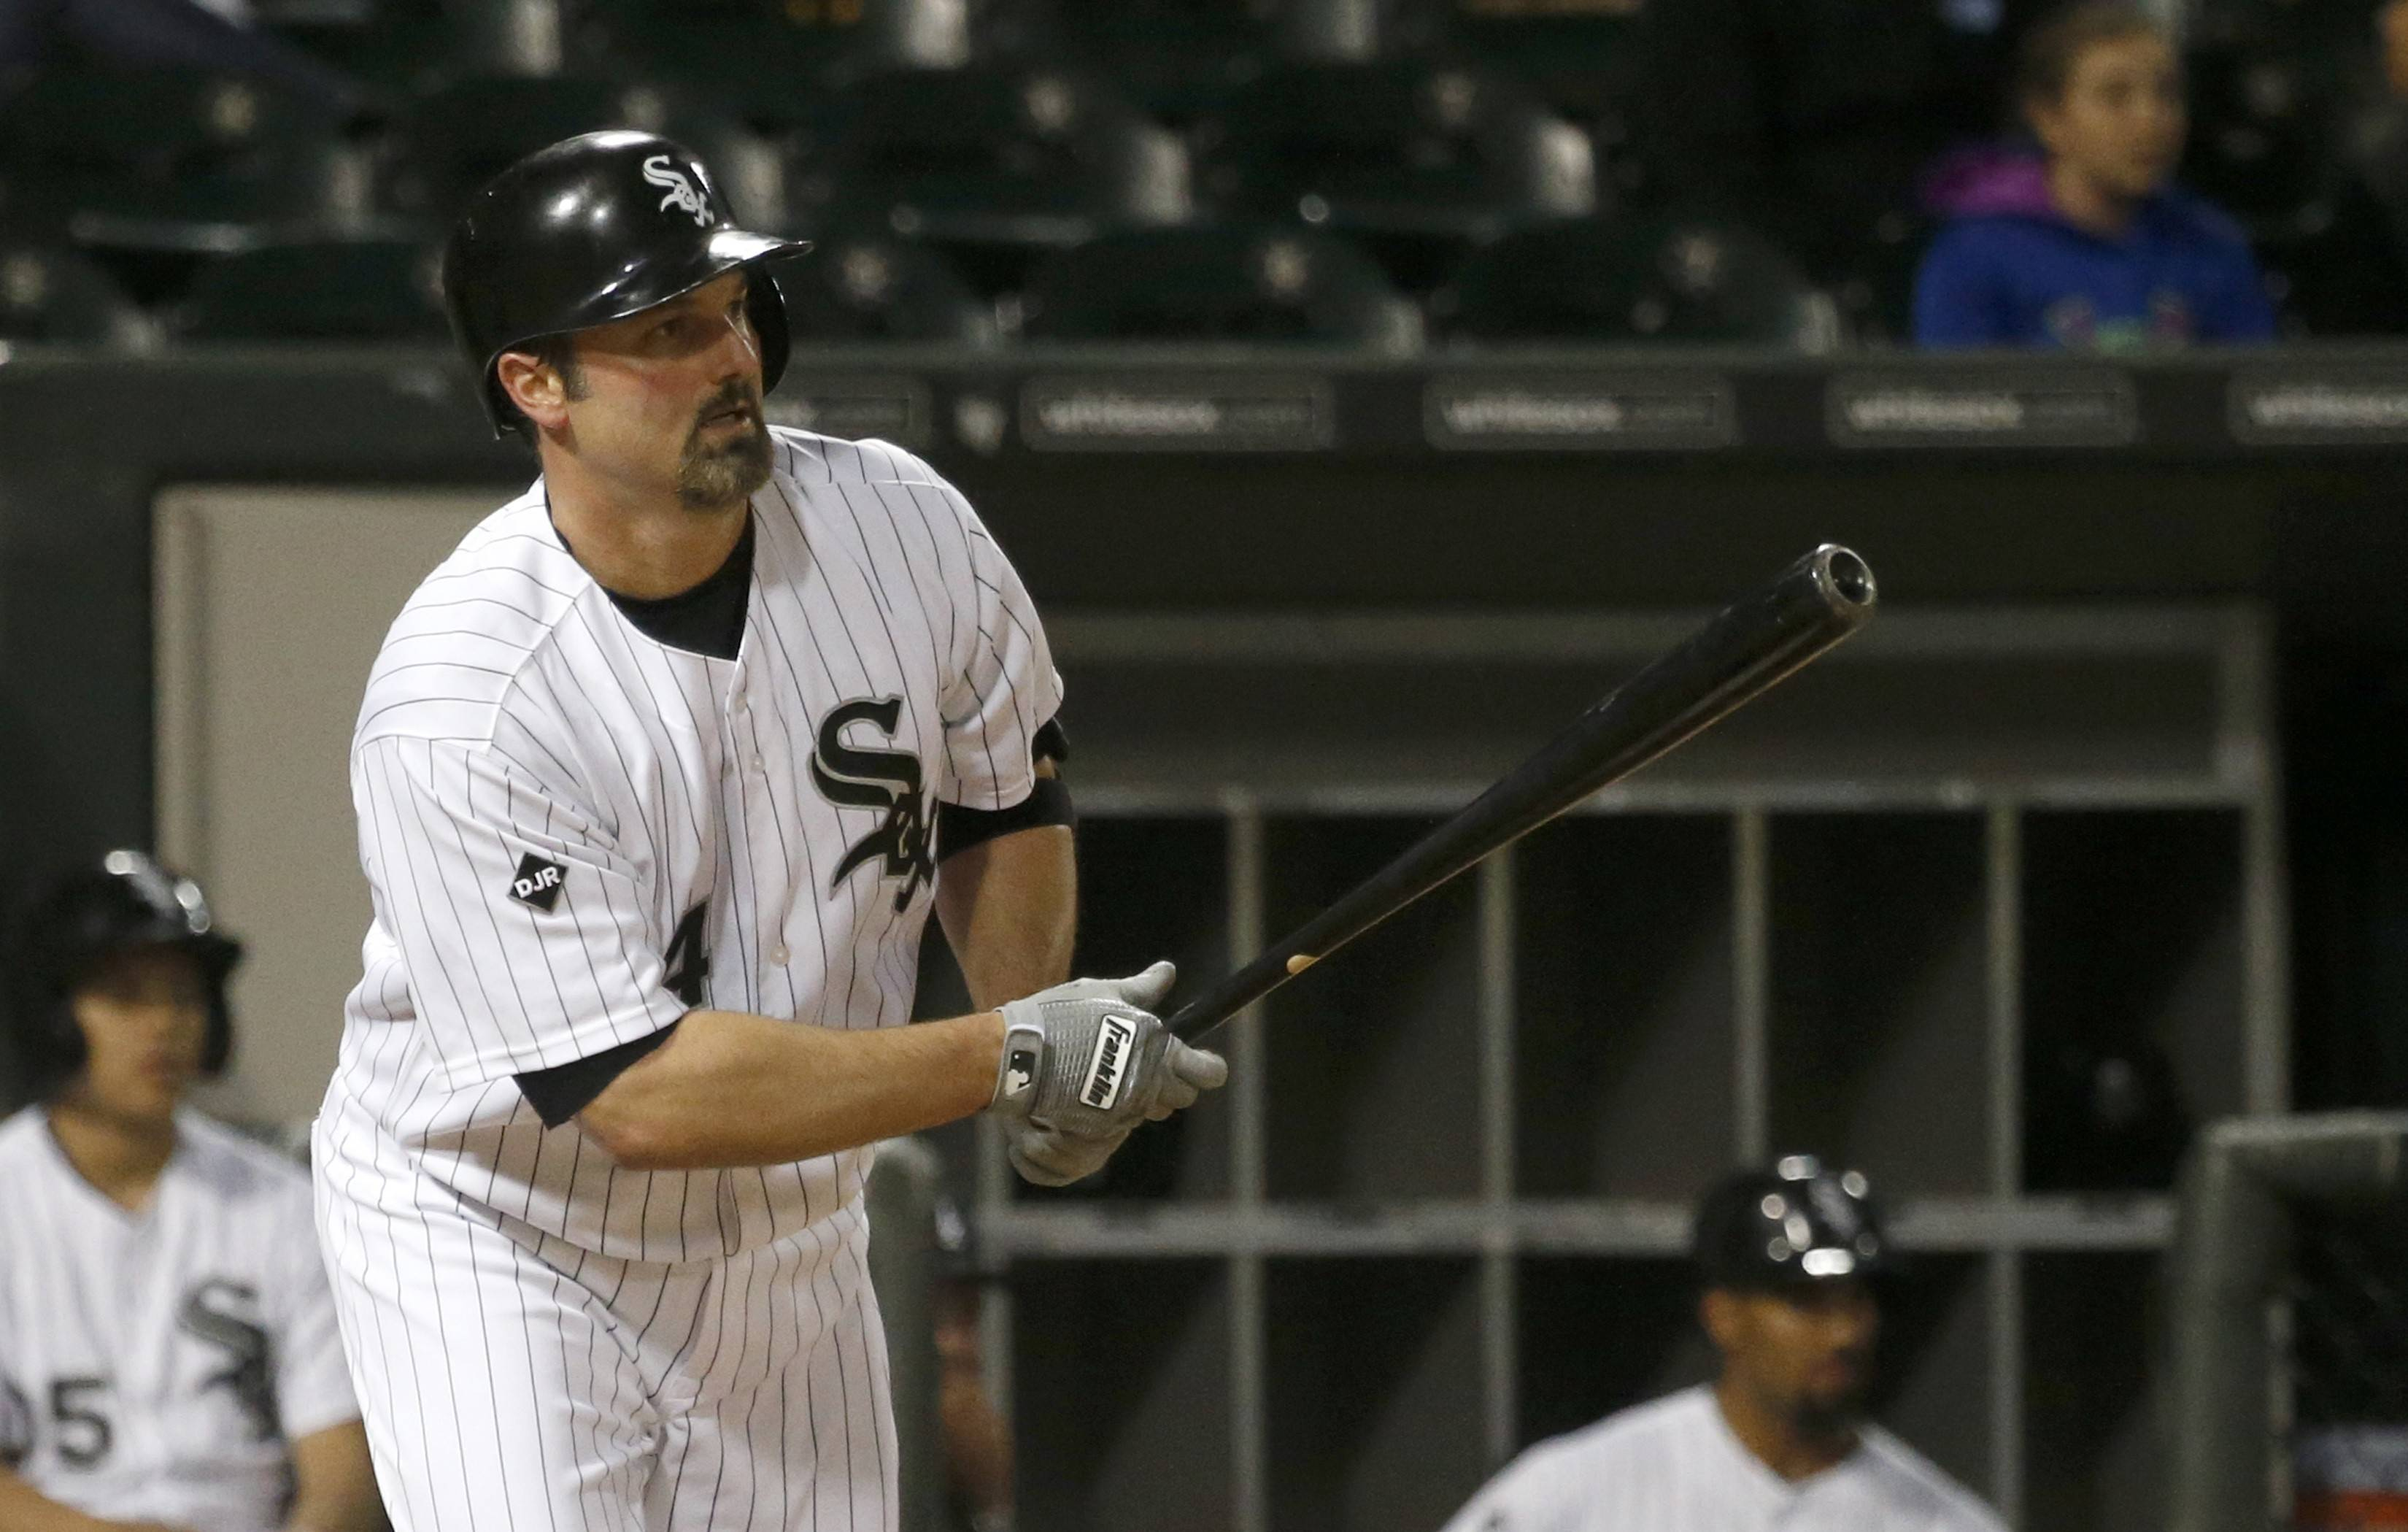 Paul Konerko has to be considered the second- or third-best hitter in White Sox history, according to Barry Rozner.